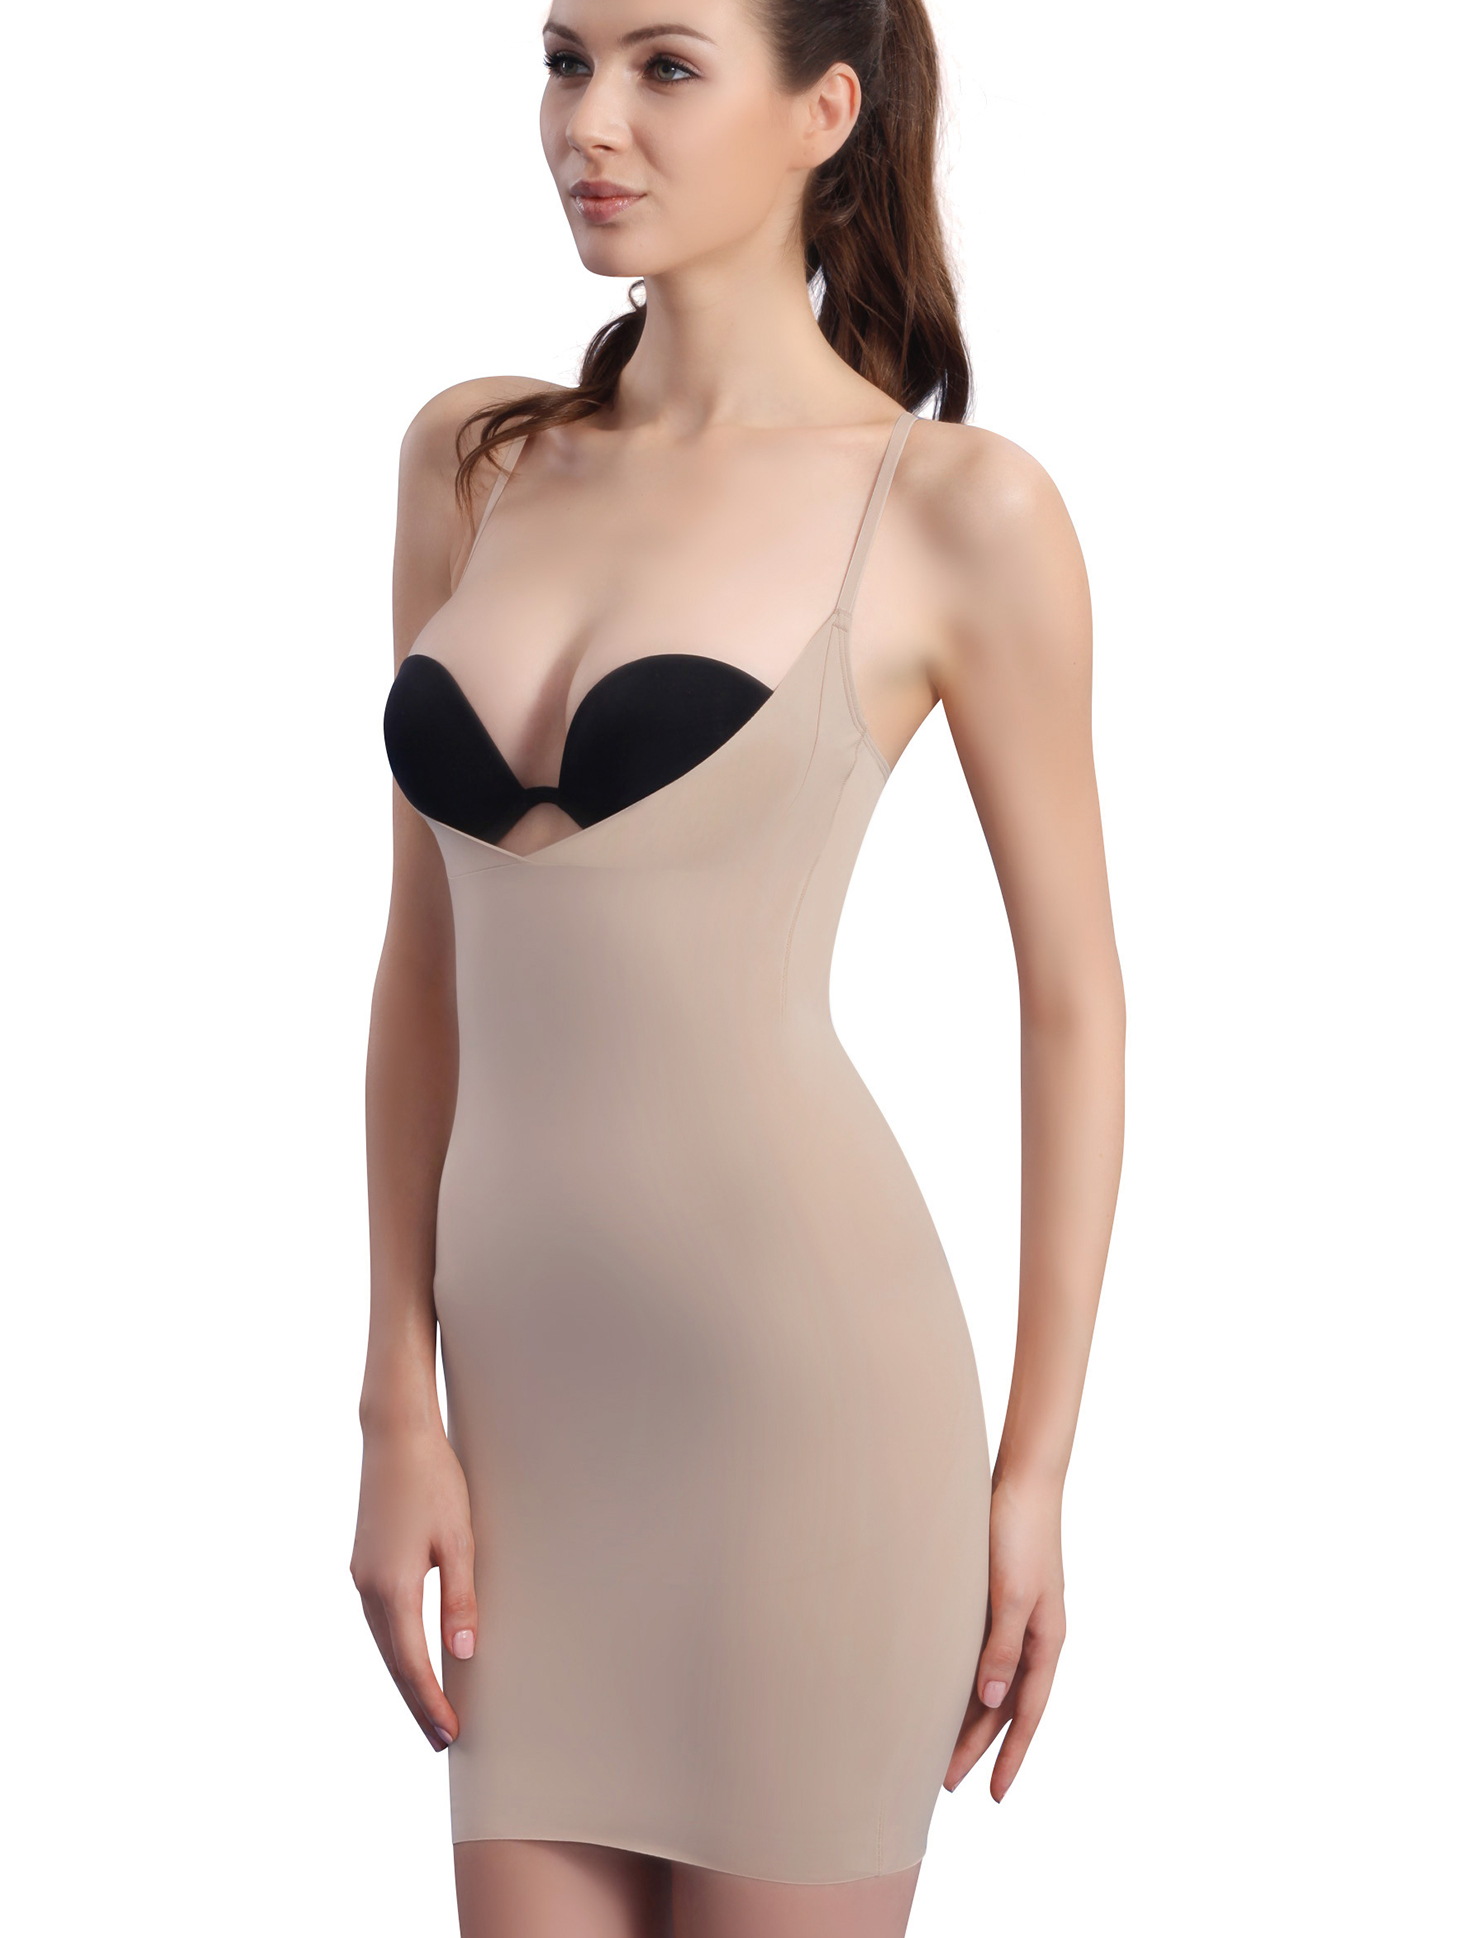 Sexy Full Figure Shaper | Slimming Shapwear Slip | PPZ.COM